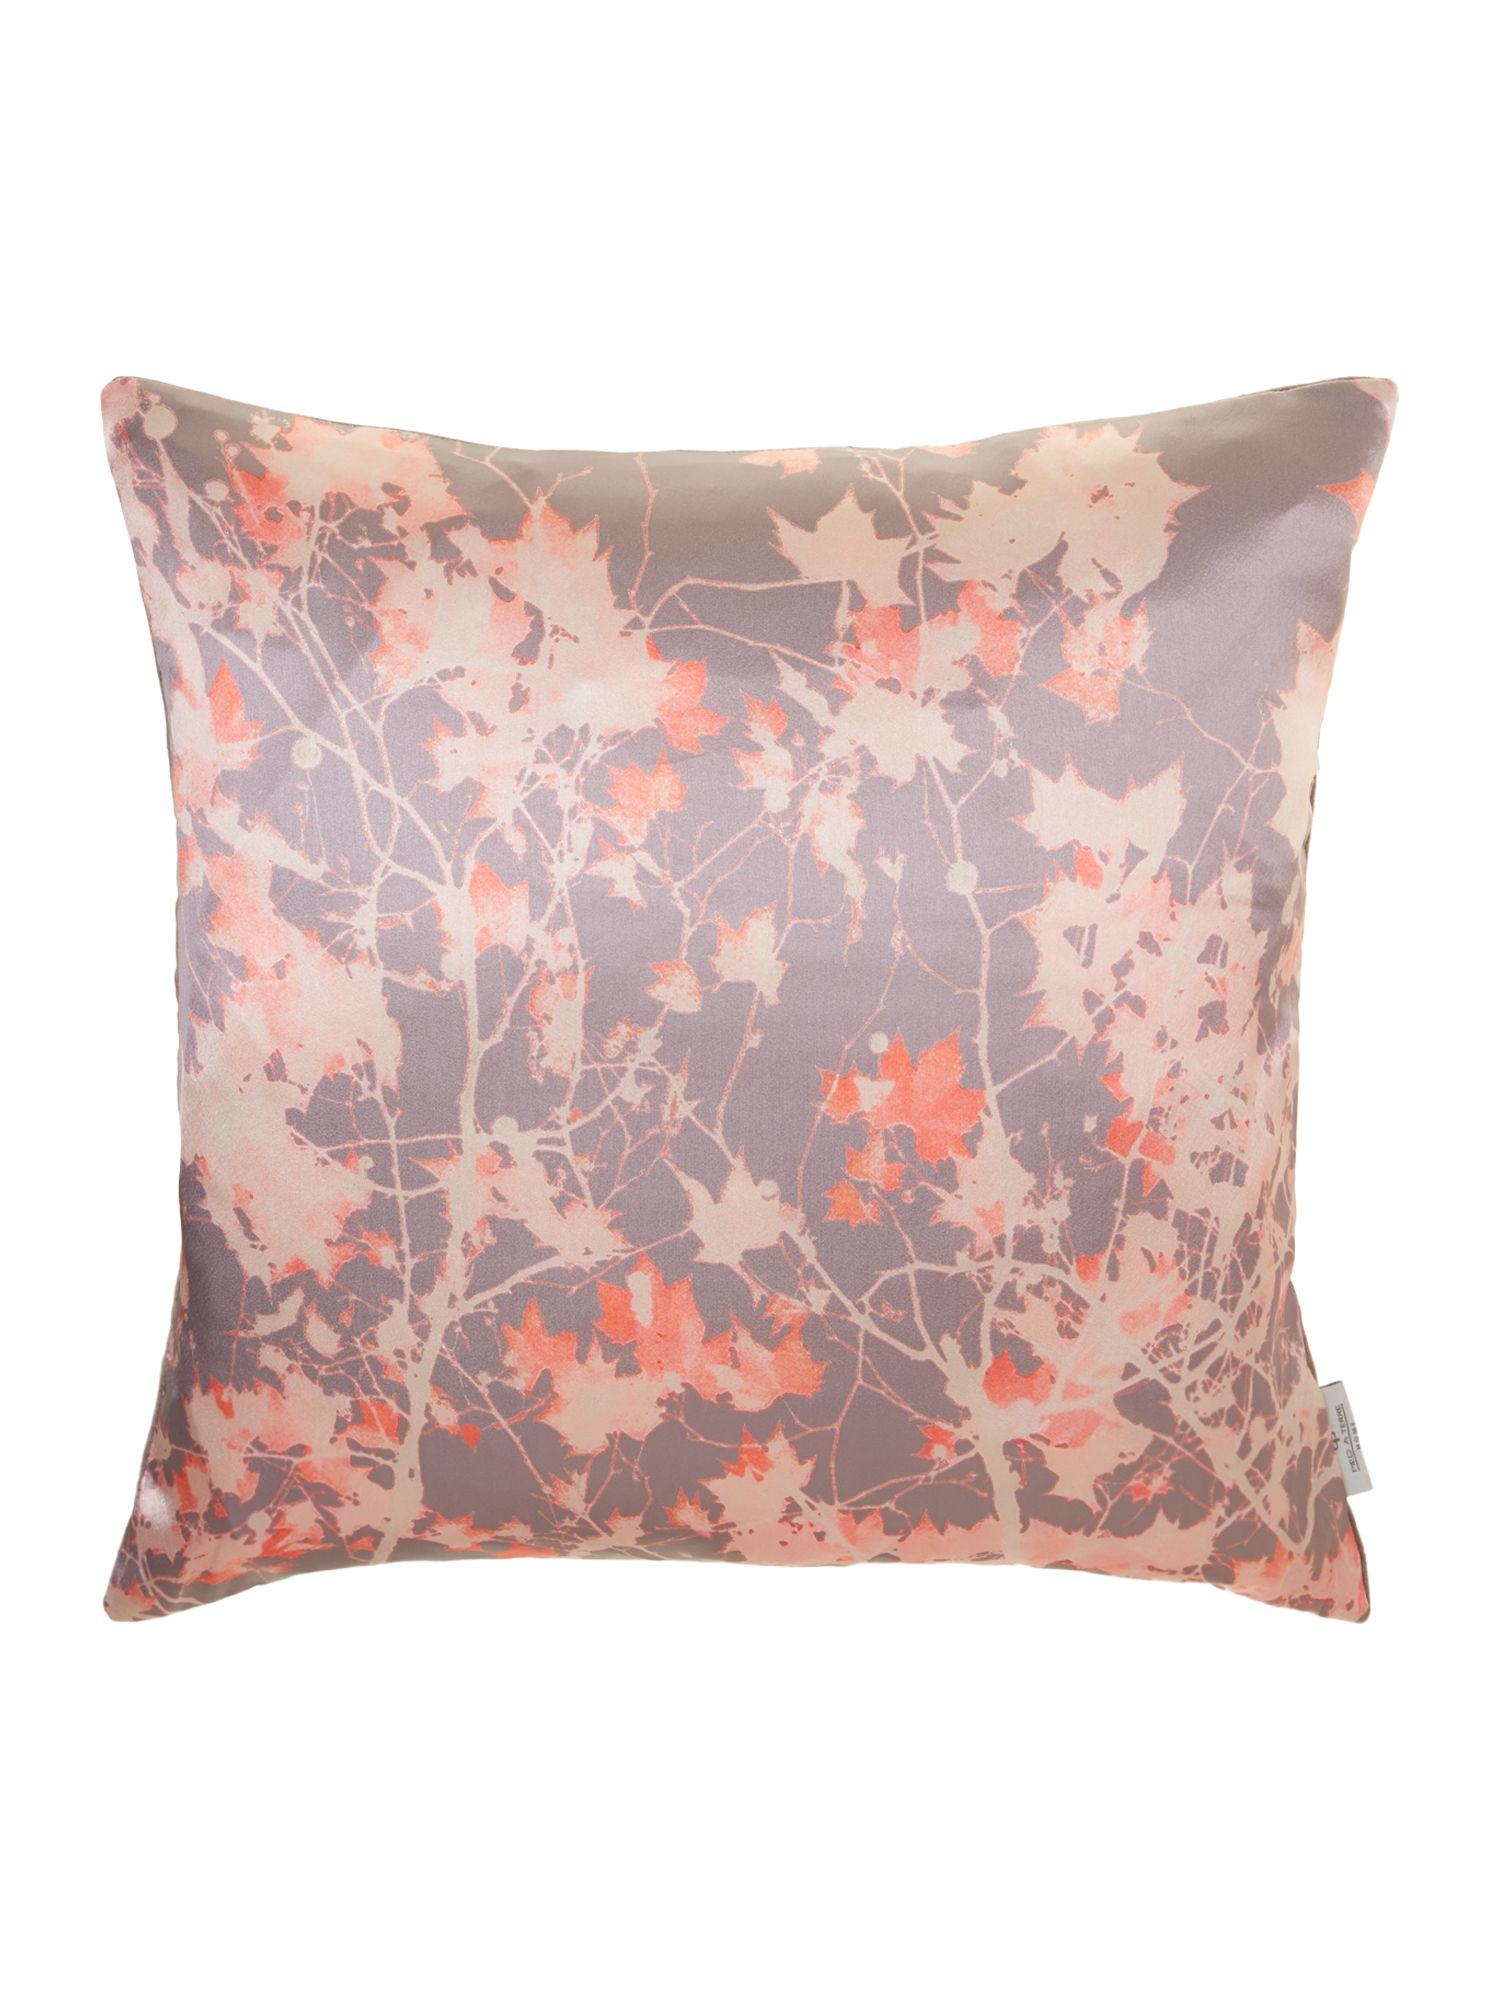 Digital print leaf cushion, coral